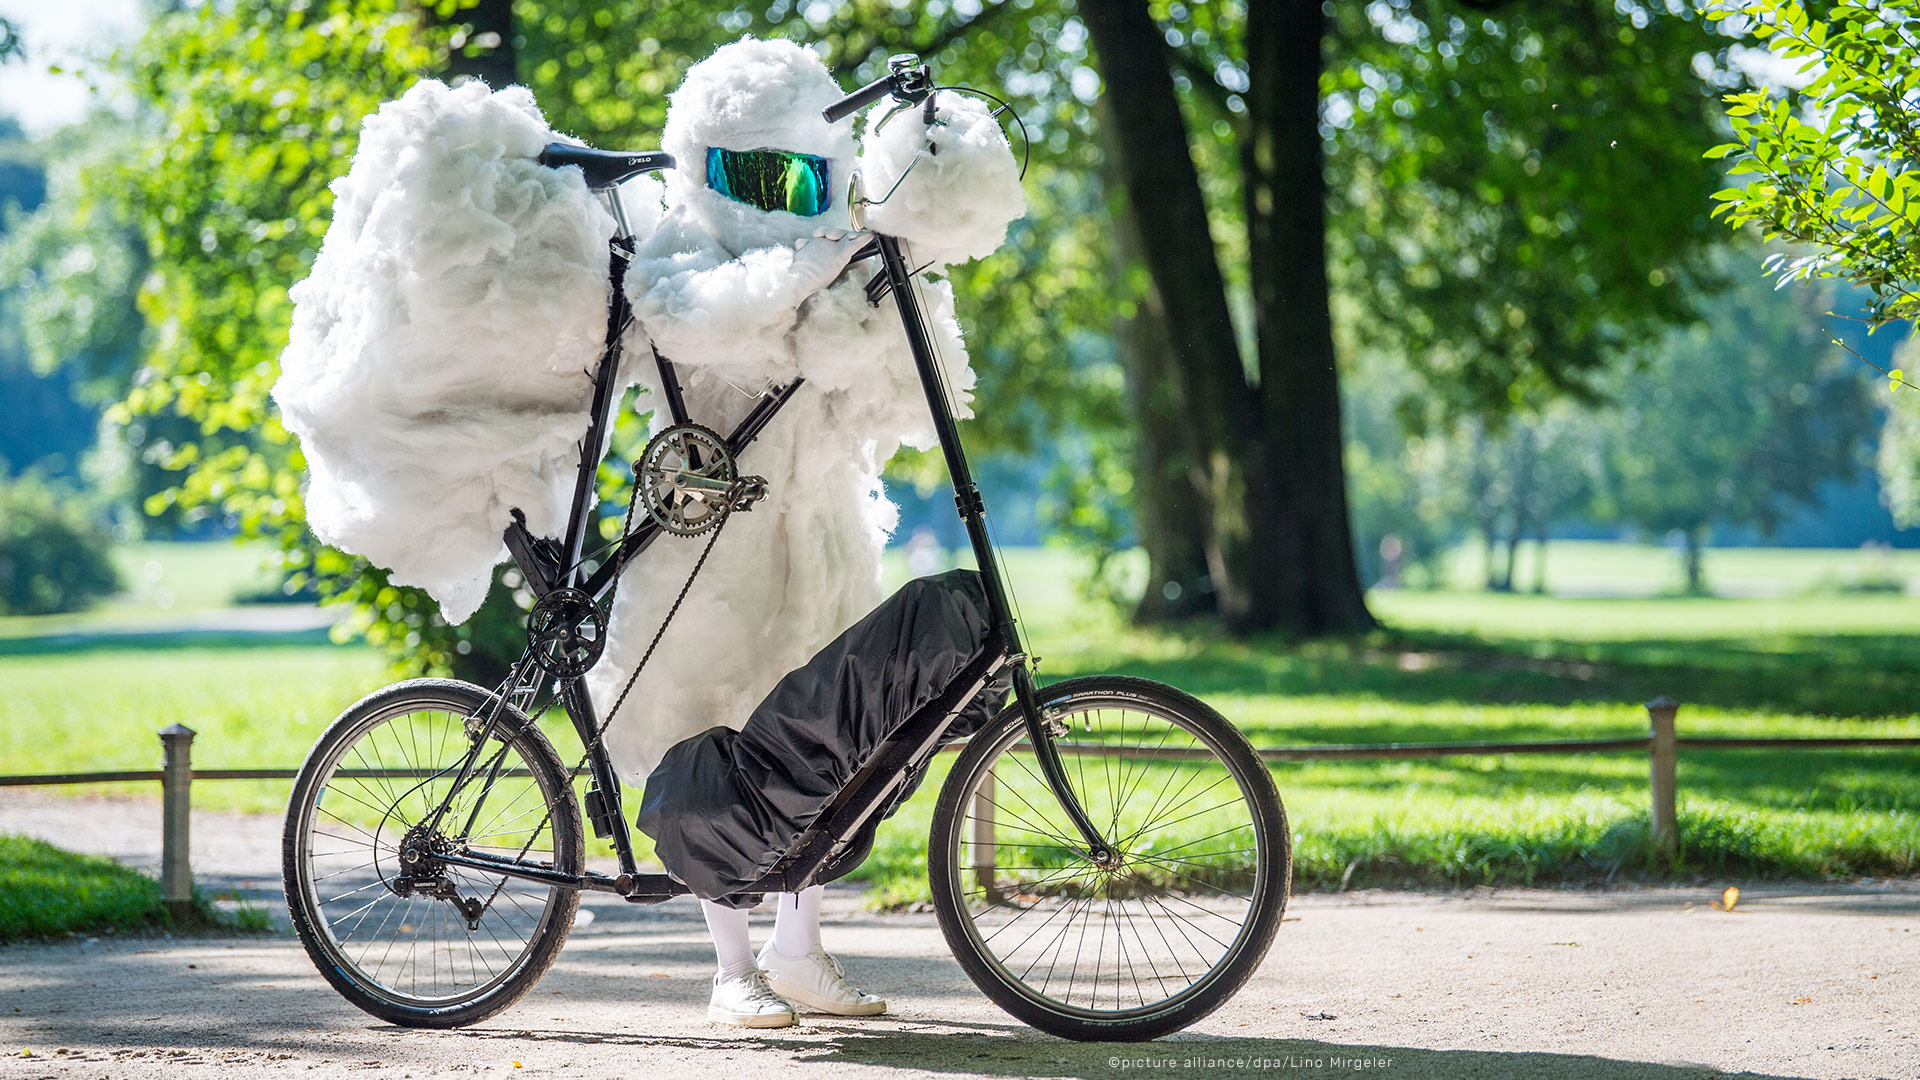 air-pollution-wolkenradler-cycling-cloud-cyclist-luftverschmutzung-soap-bubbles-smoke